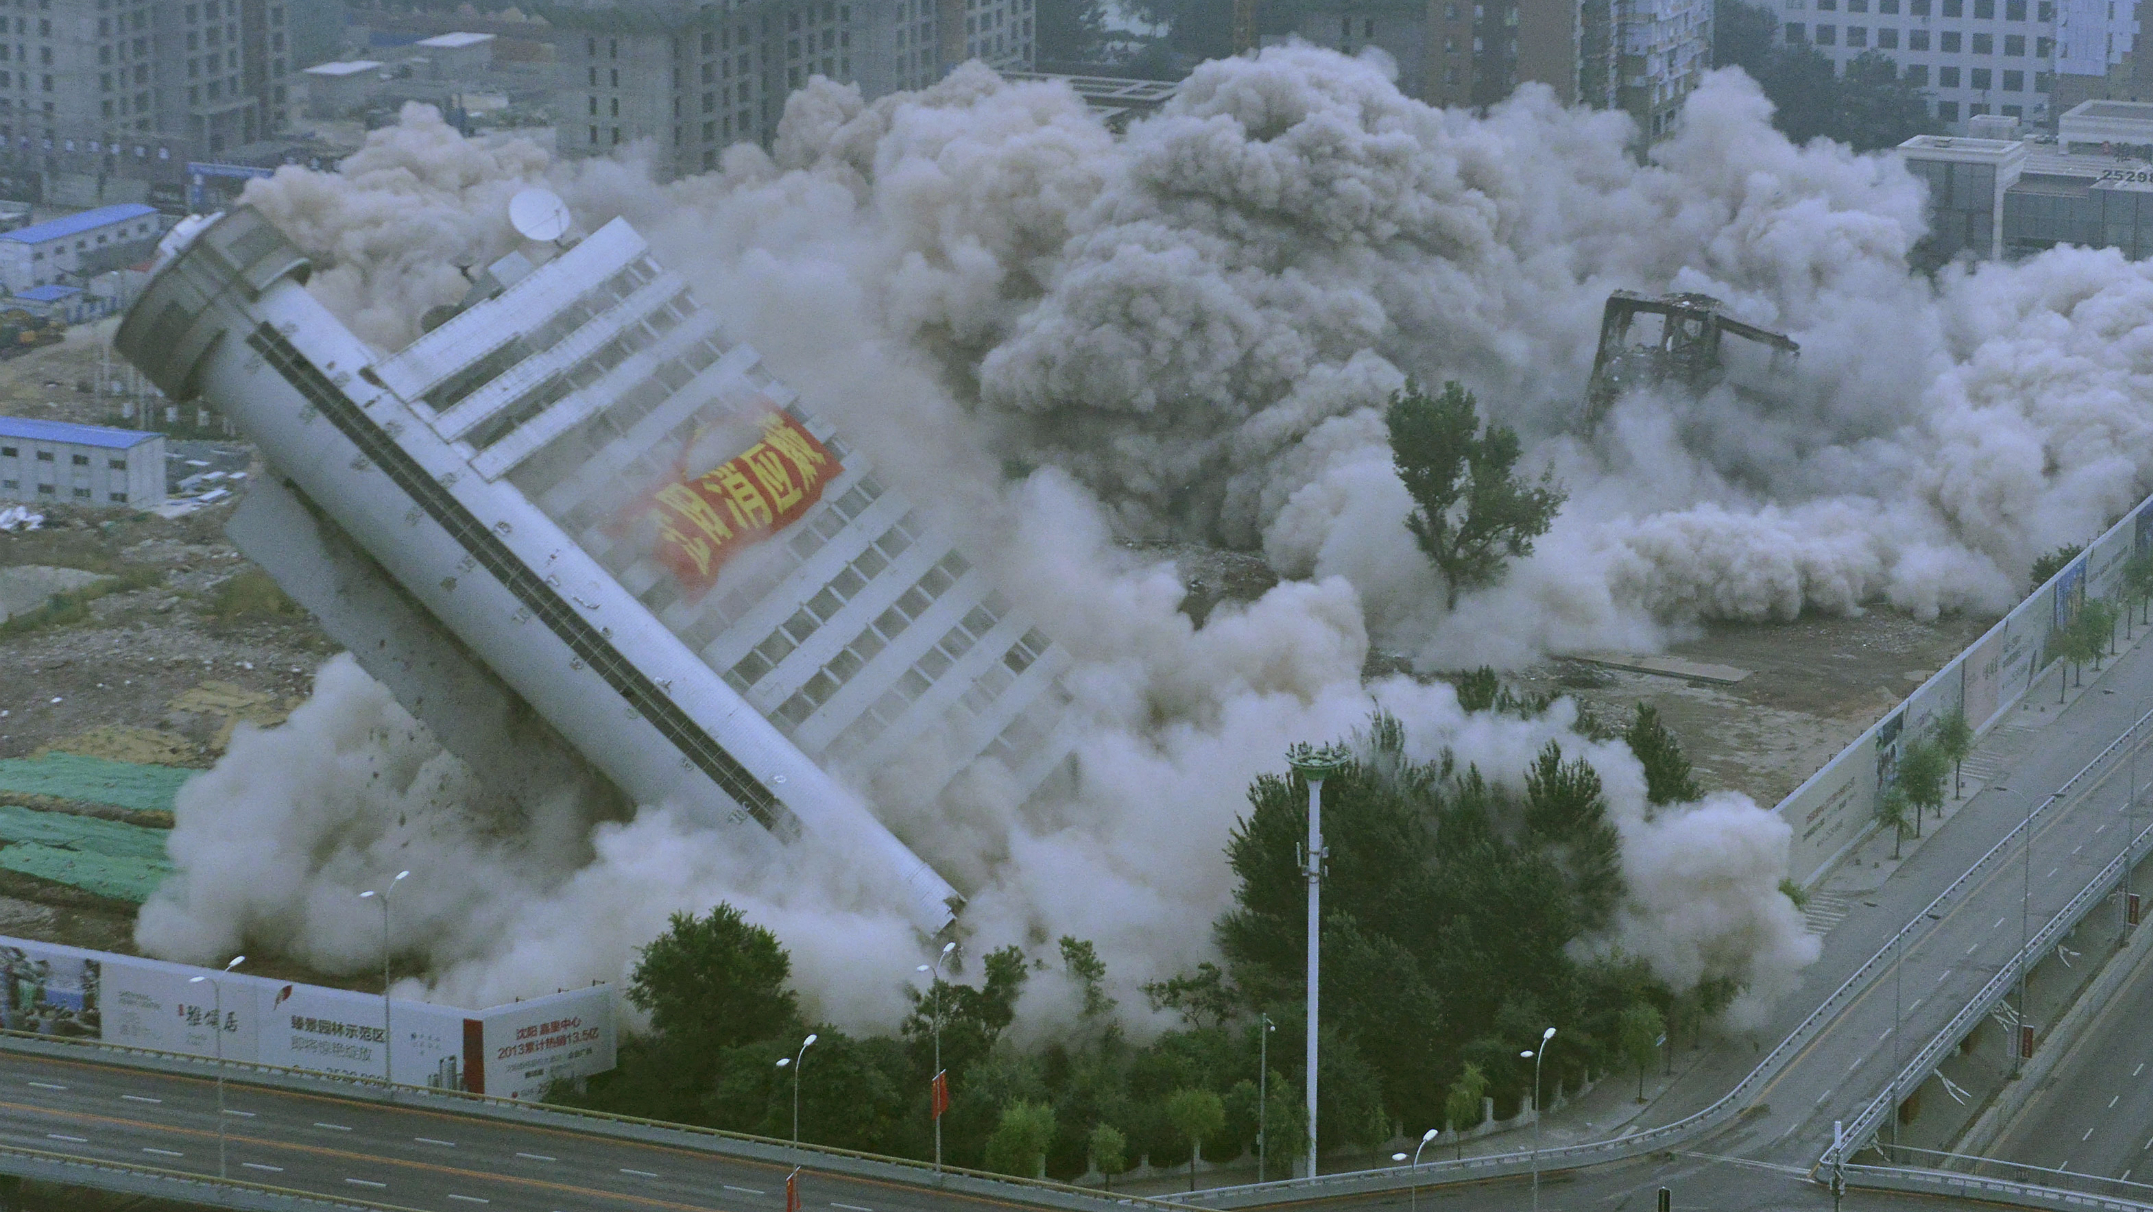 The building of Liaoning Province Meteorological Station topples near a residential construction site during a controlled demolition in Shenyang, Liaoning province September 29, 2013. The building, with a 45-metre-high giant thermometer attached to its exterior, was demolished to make way for a new residential area, local media reported. REUTERS/Stringer (CHINA - Tags: BUSINESS REAL ESTATE ENVIRONMENT CONSTRUCTION TPX IMAGES OF THE DAY)